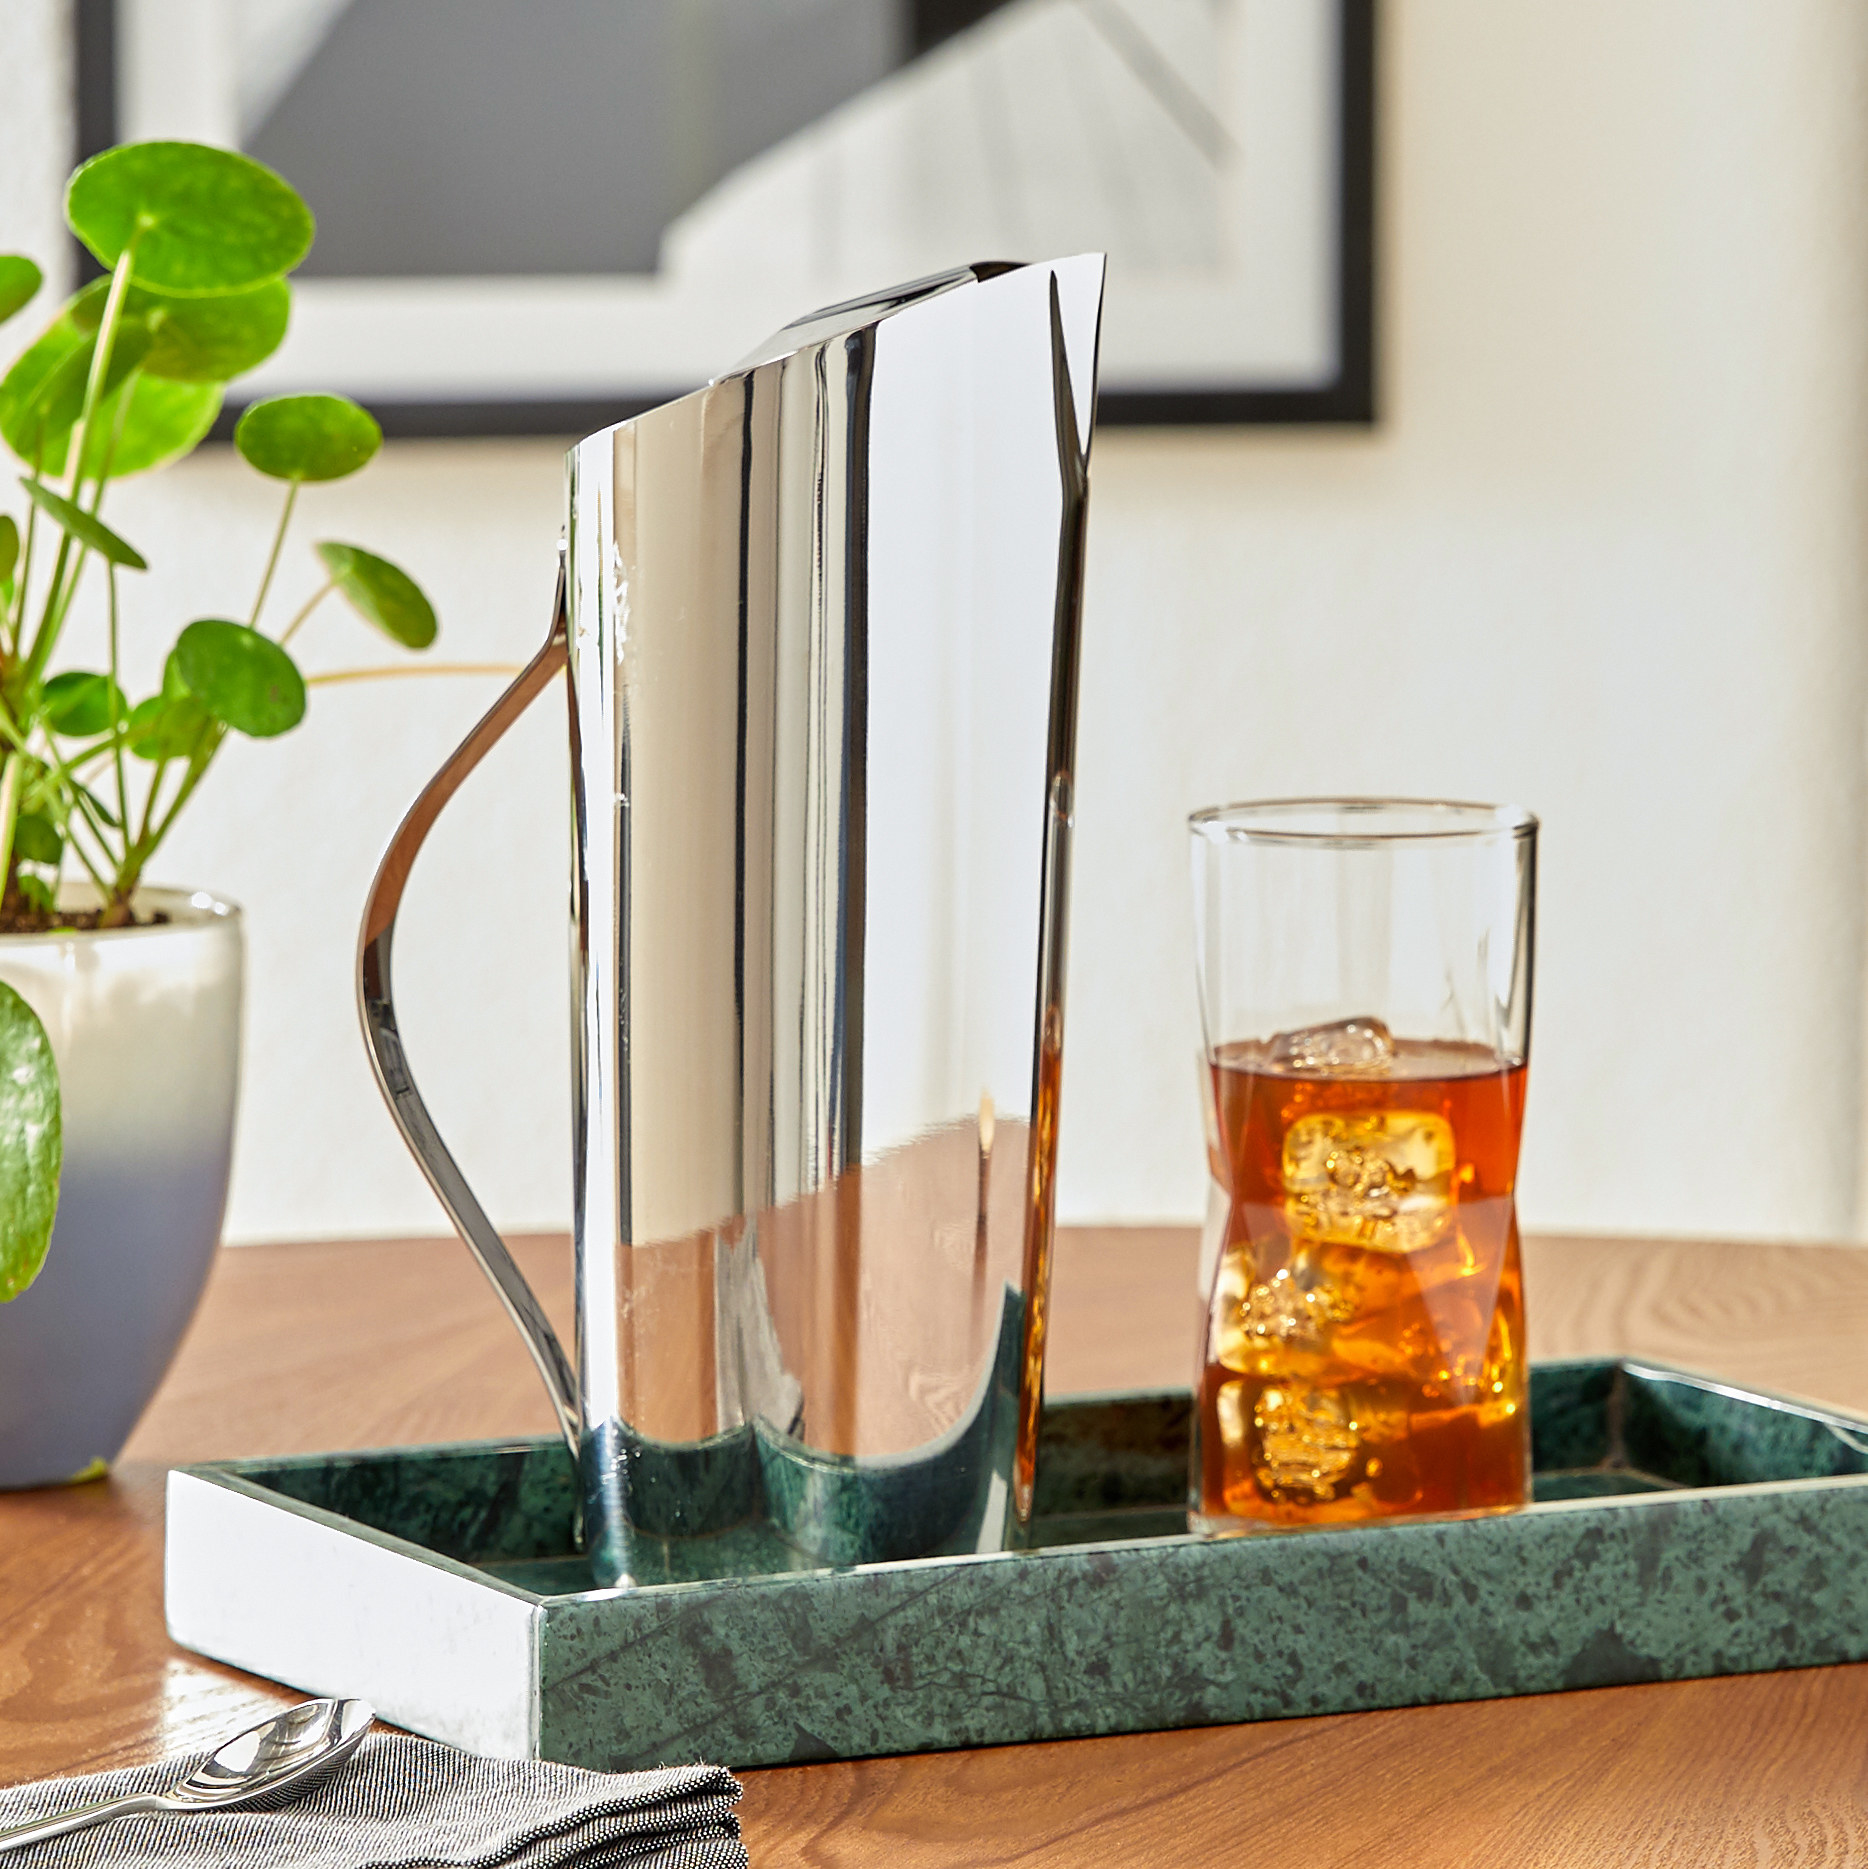 The pitcher, which is slim, has a handle, and an asymmetrical top that forms a spout